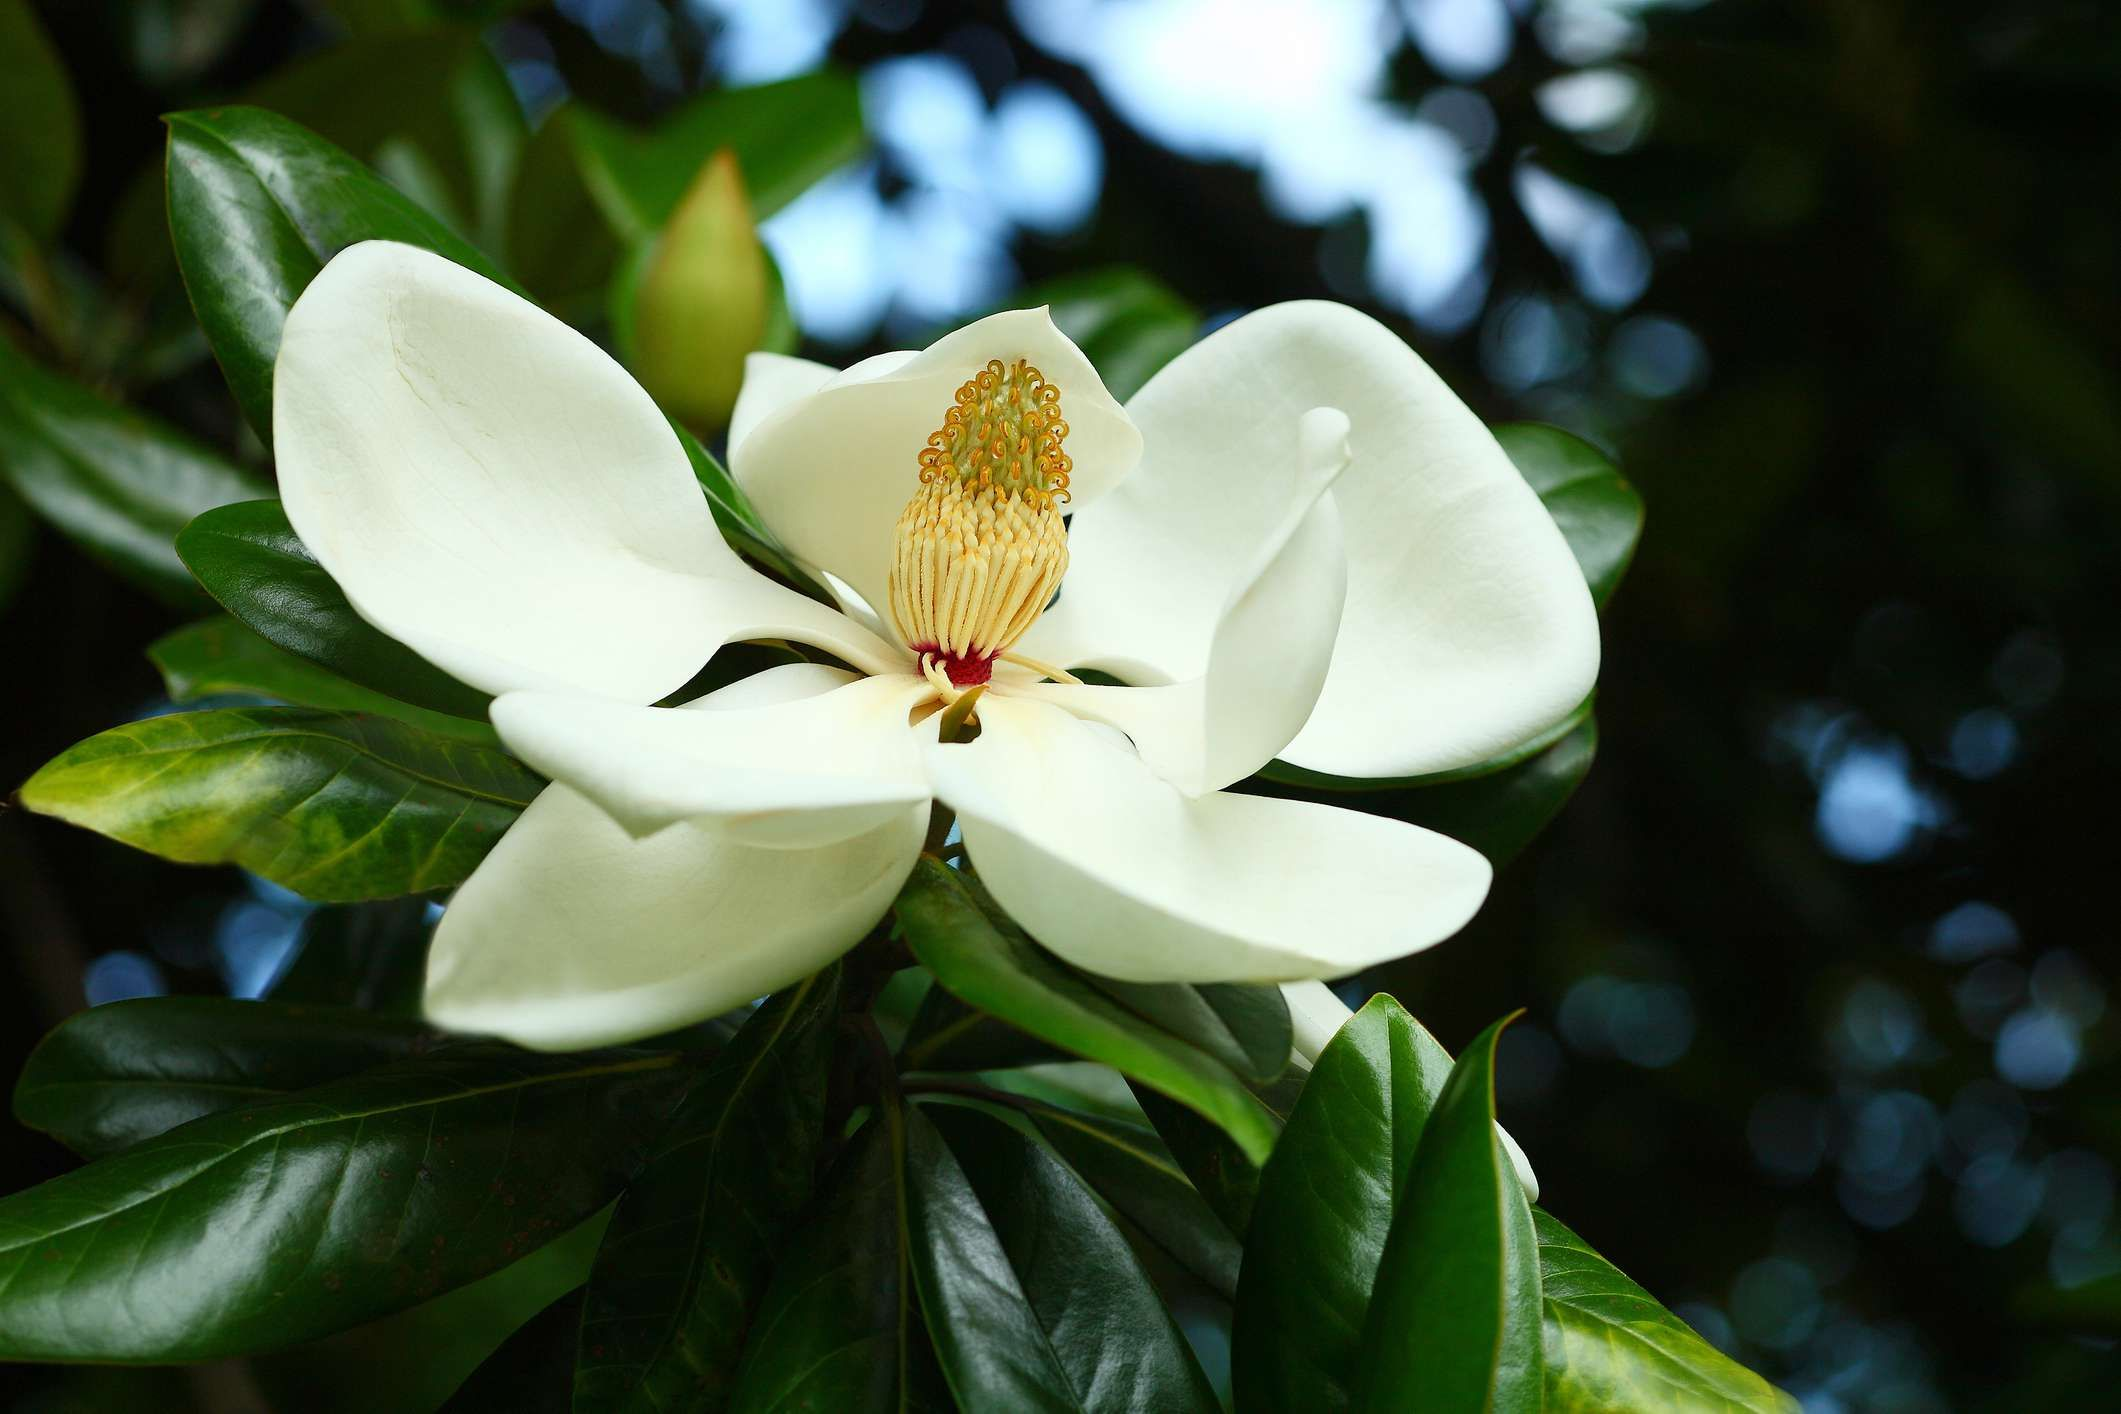 12 Species Of Magnolia Trees And Shrubs Flowers Magnolia Trees